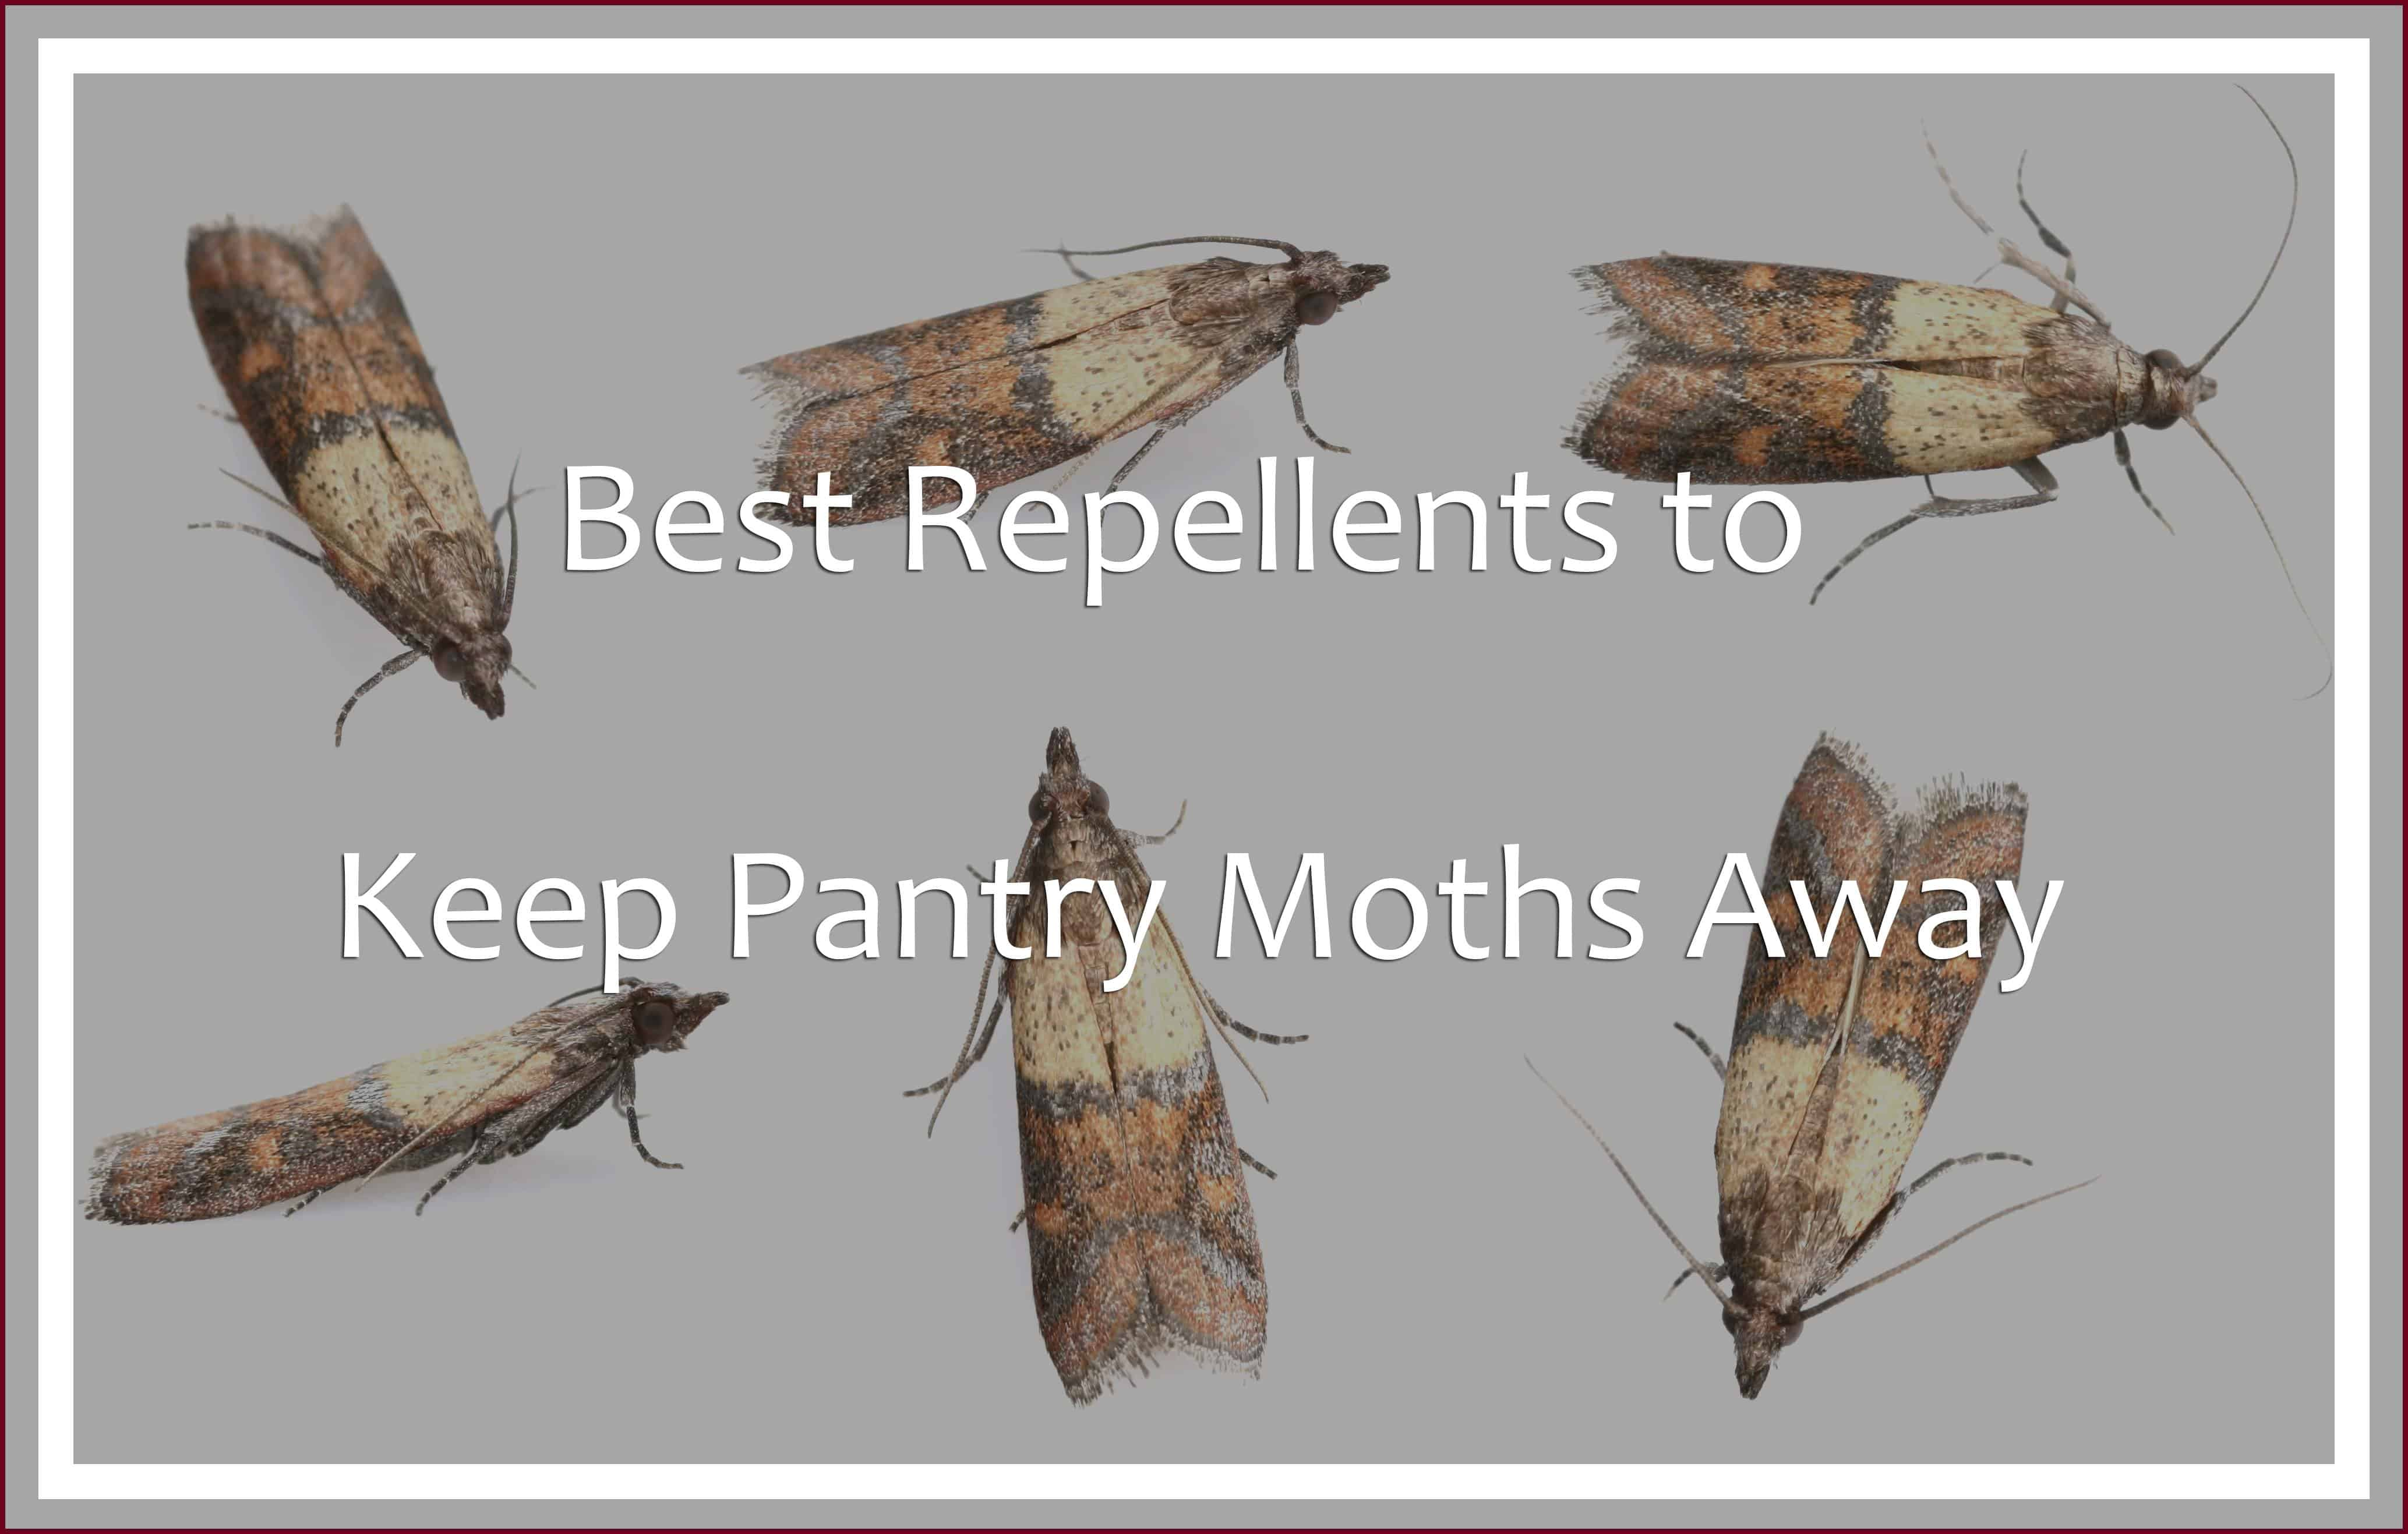 Repellents to Keep Pantry Moths away